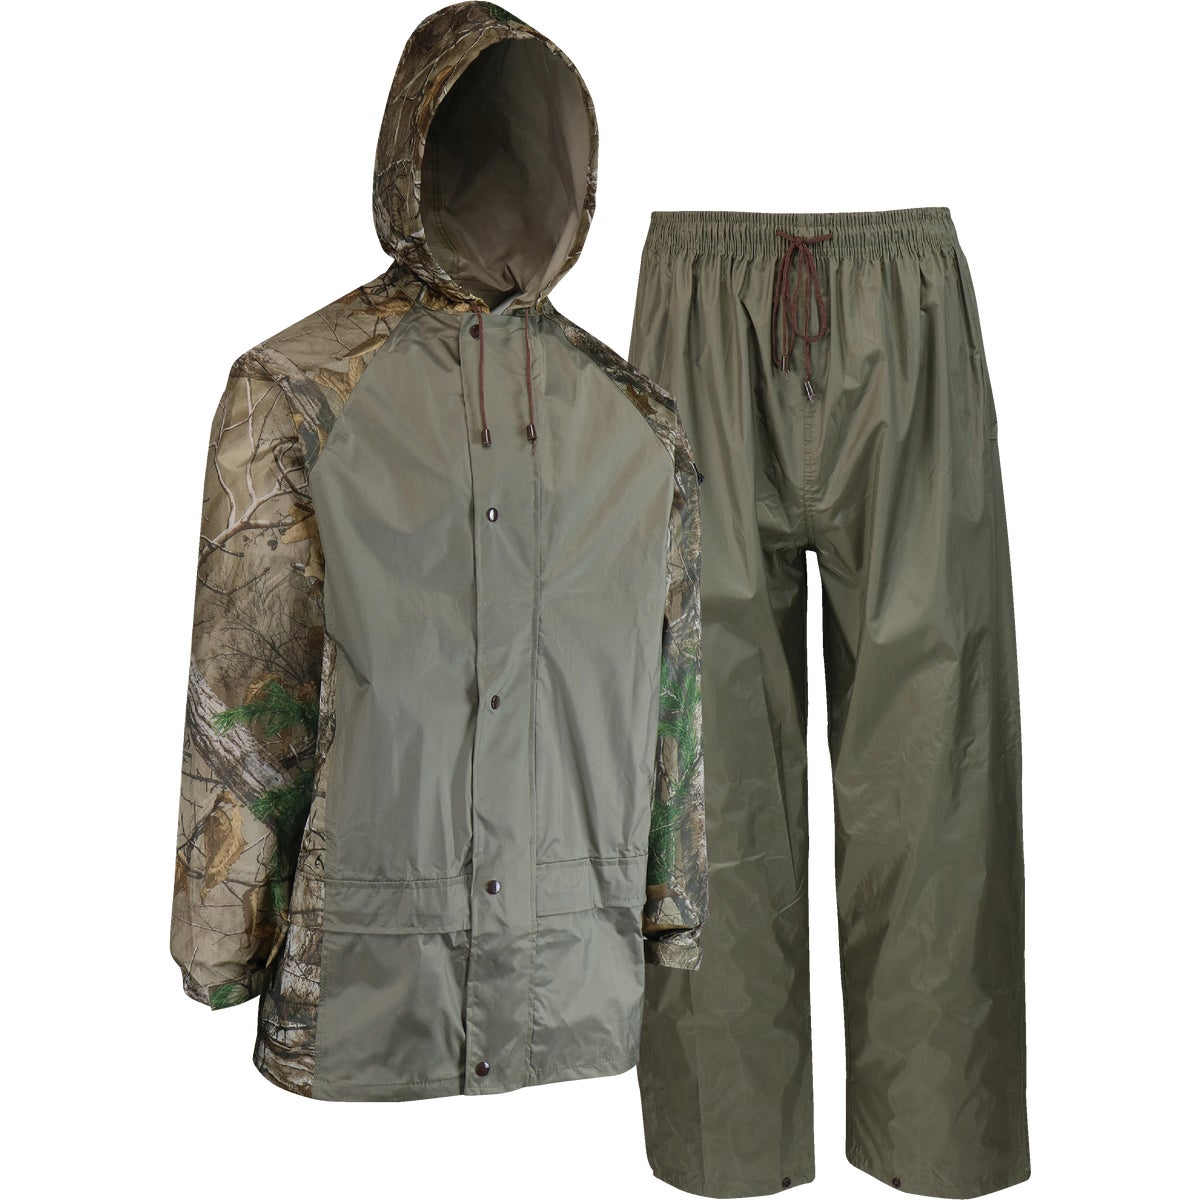 West Chester 2-Piece RealTree Camo Rain Suit, RE46200/XL